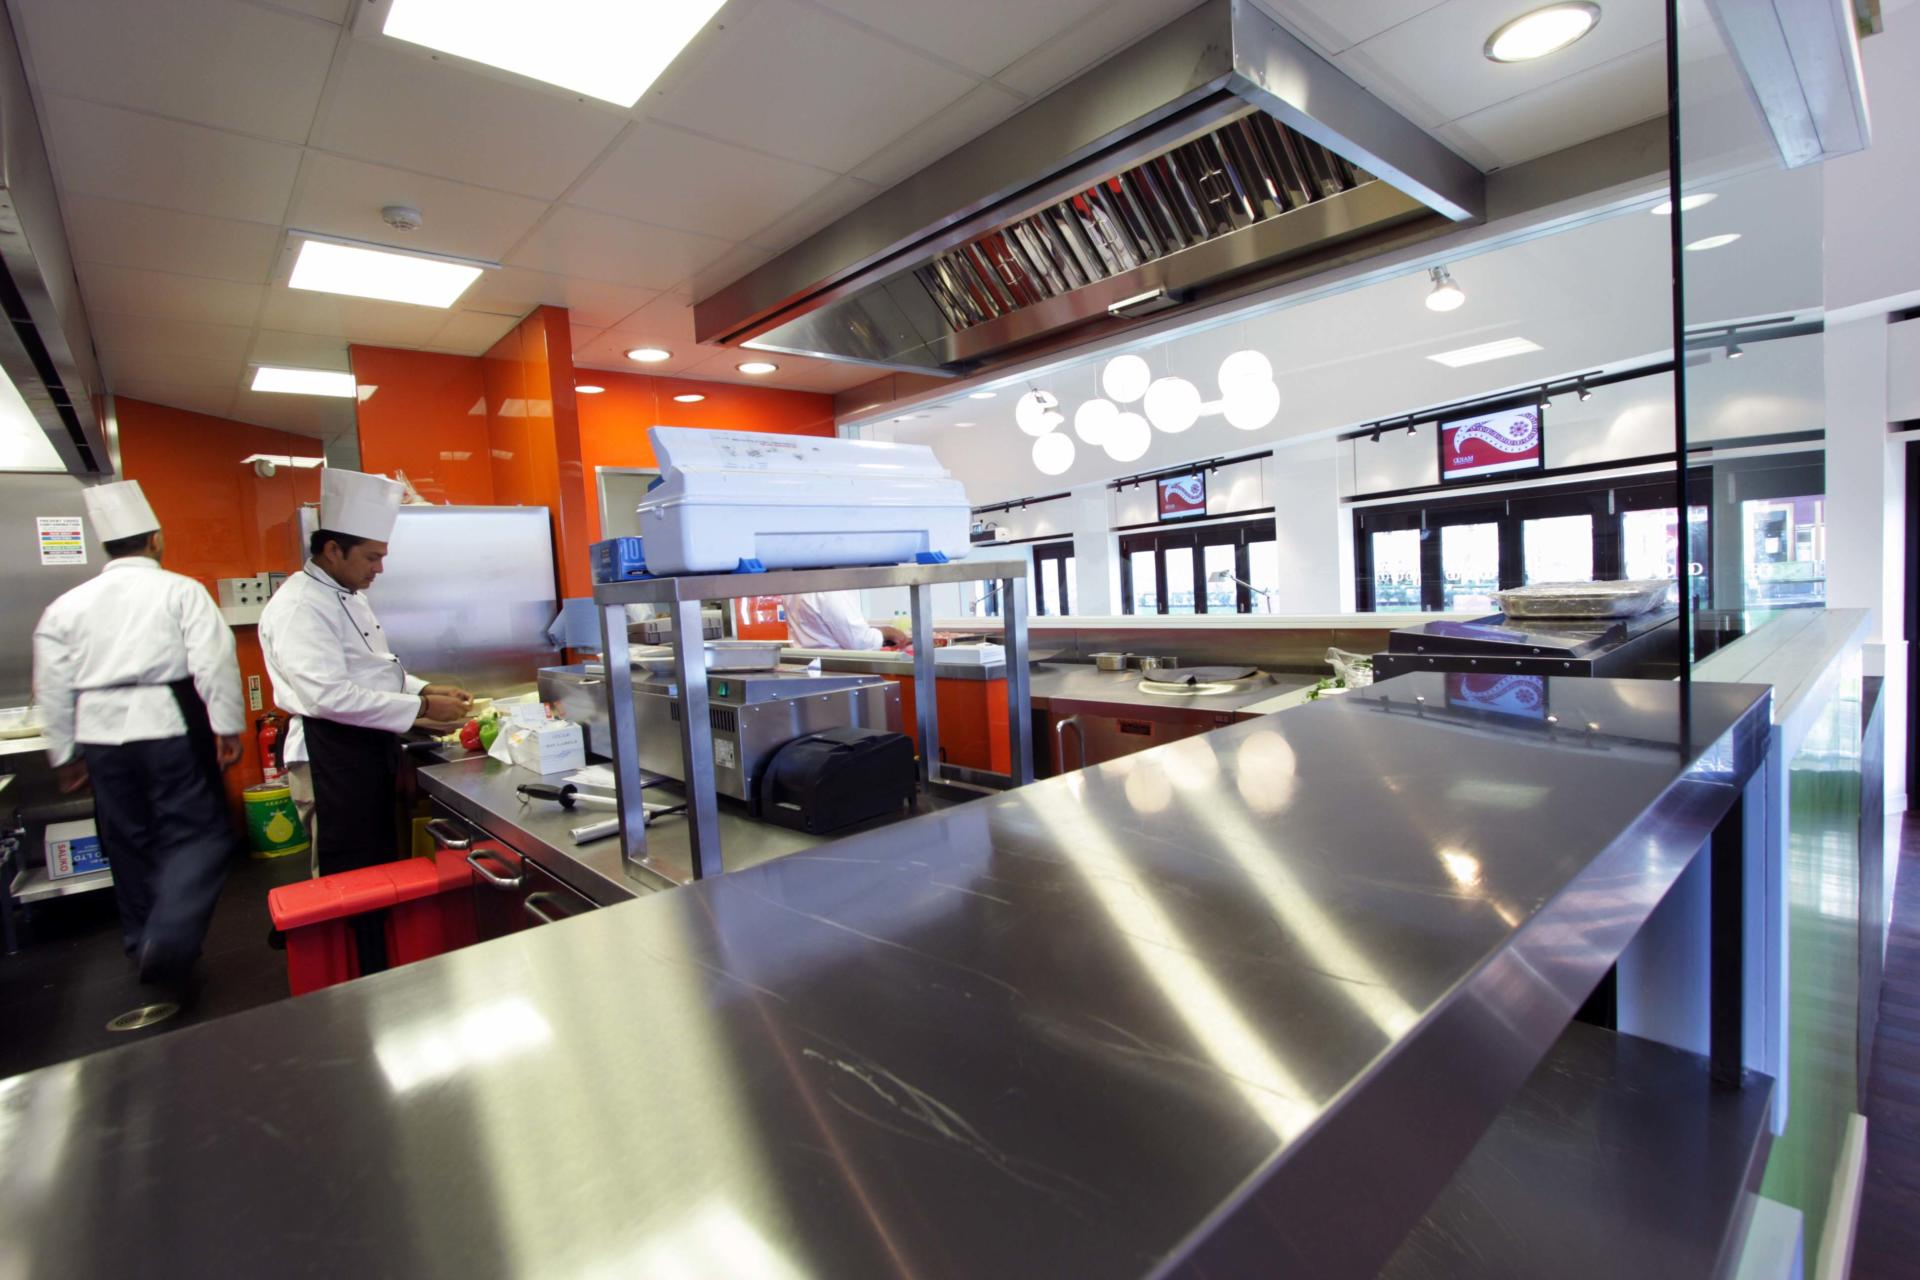 Oojam-Hemel-Hempstead-Indian-restaurant-and-kitchenFabrication-Stainless-Steel-Commercial-Kitchen-spacecatering_6